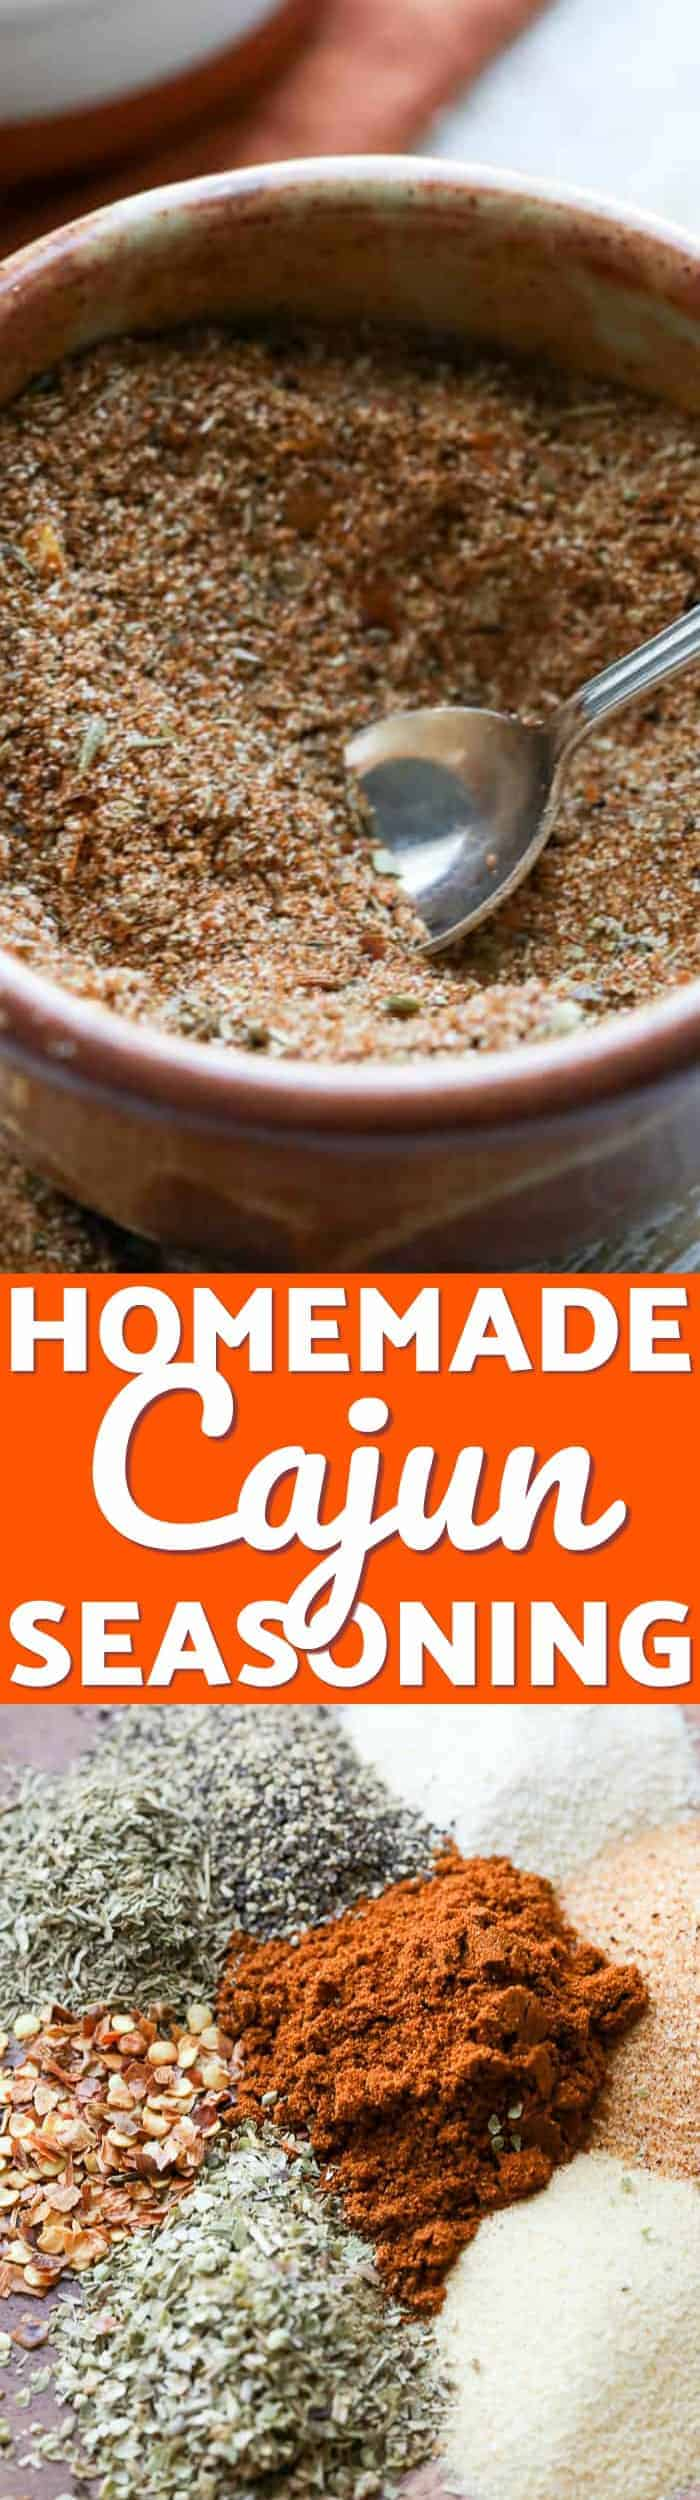 Cajun Seasoning contains super flavorful components such as garlic powder, onion powder, seasoning salt, oregano, and thyme. #spendwithpennies #seasoning #cajun #easyrecipe #homemade